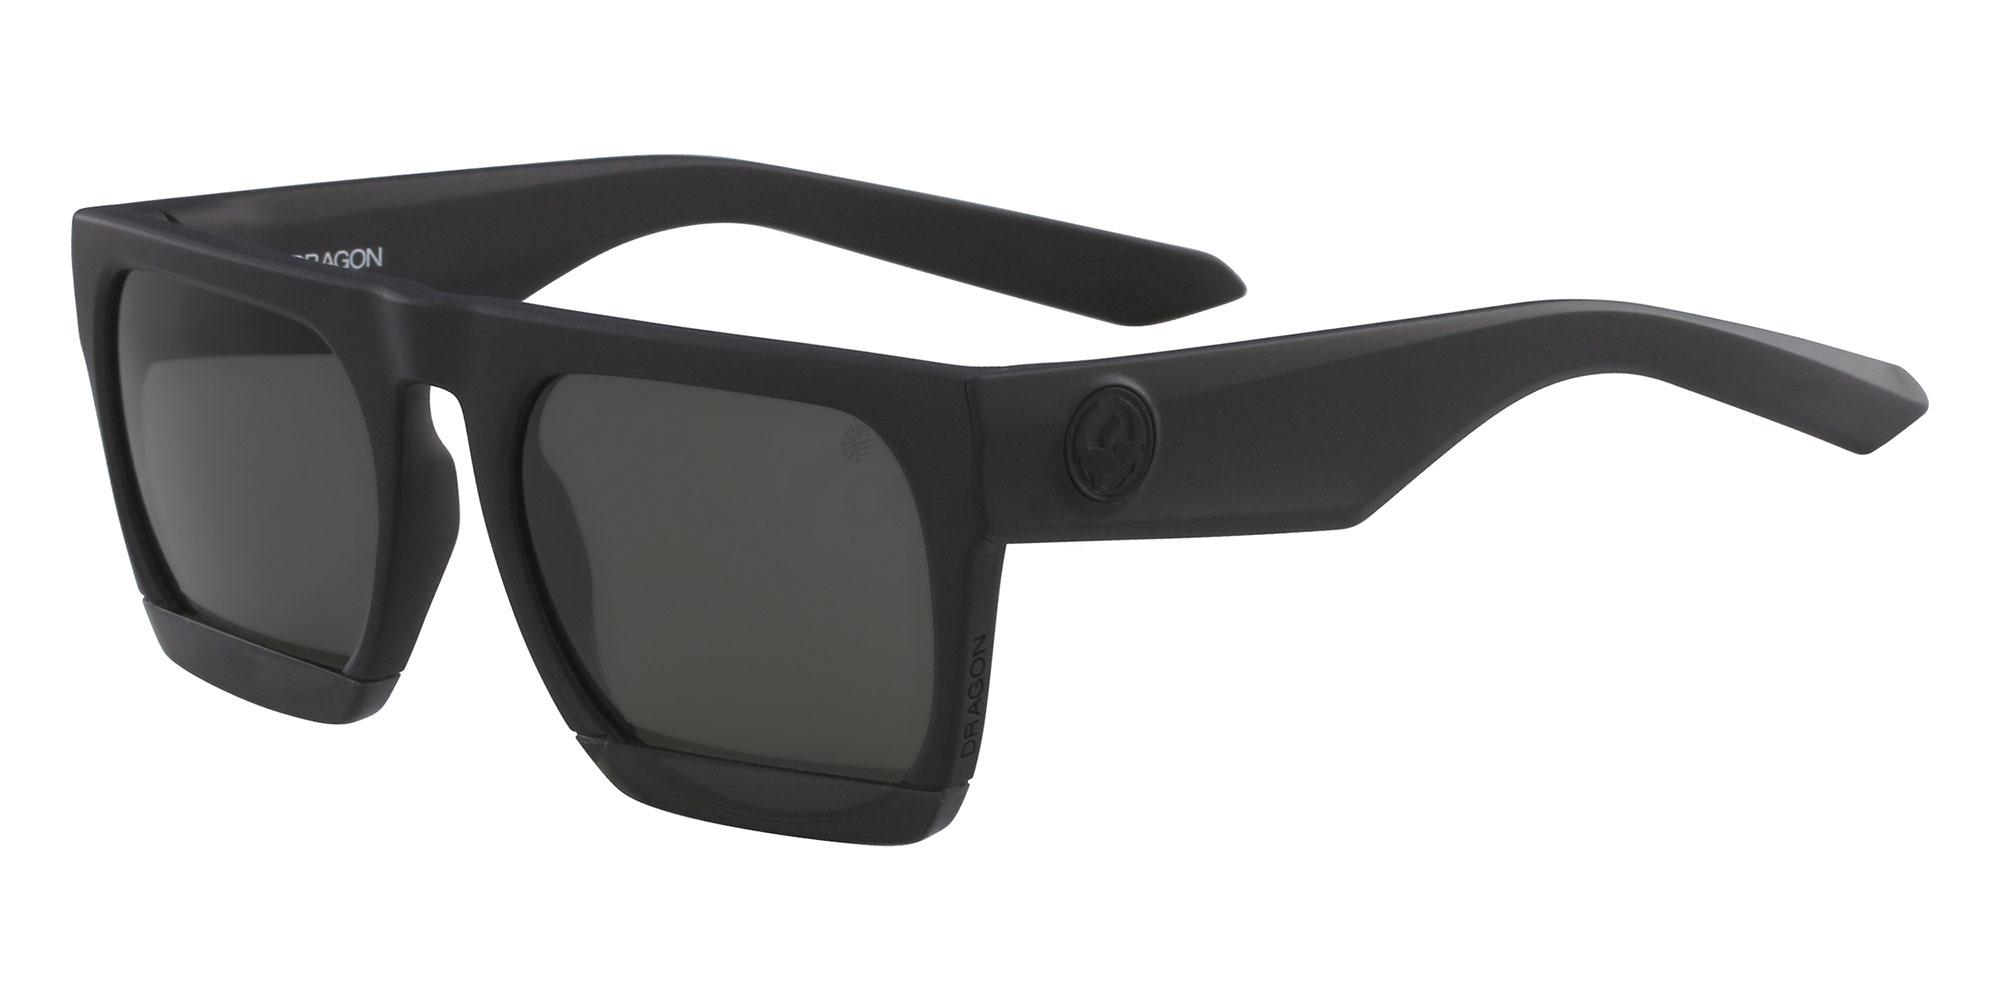 004 DR FAKIE POLAR Sunglasses, Dragon